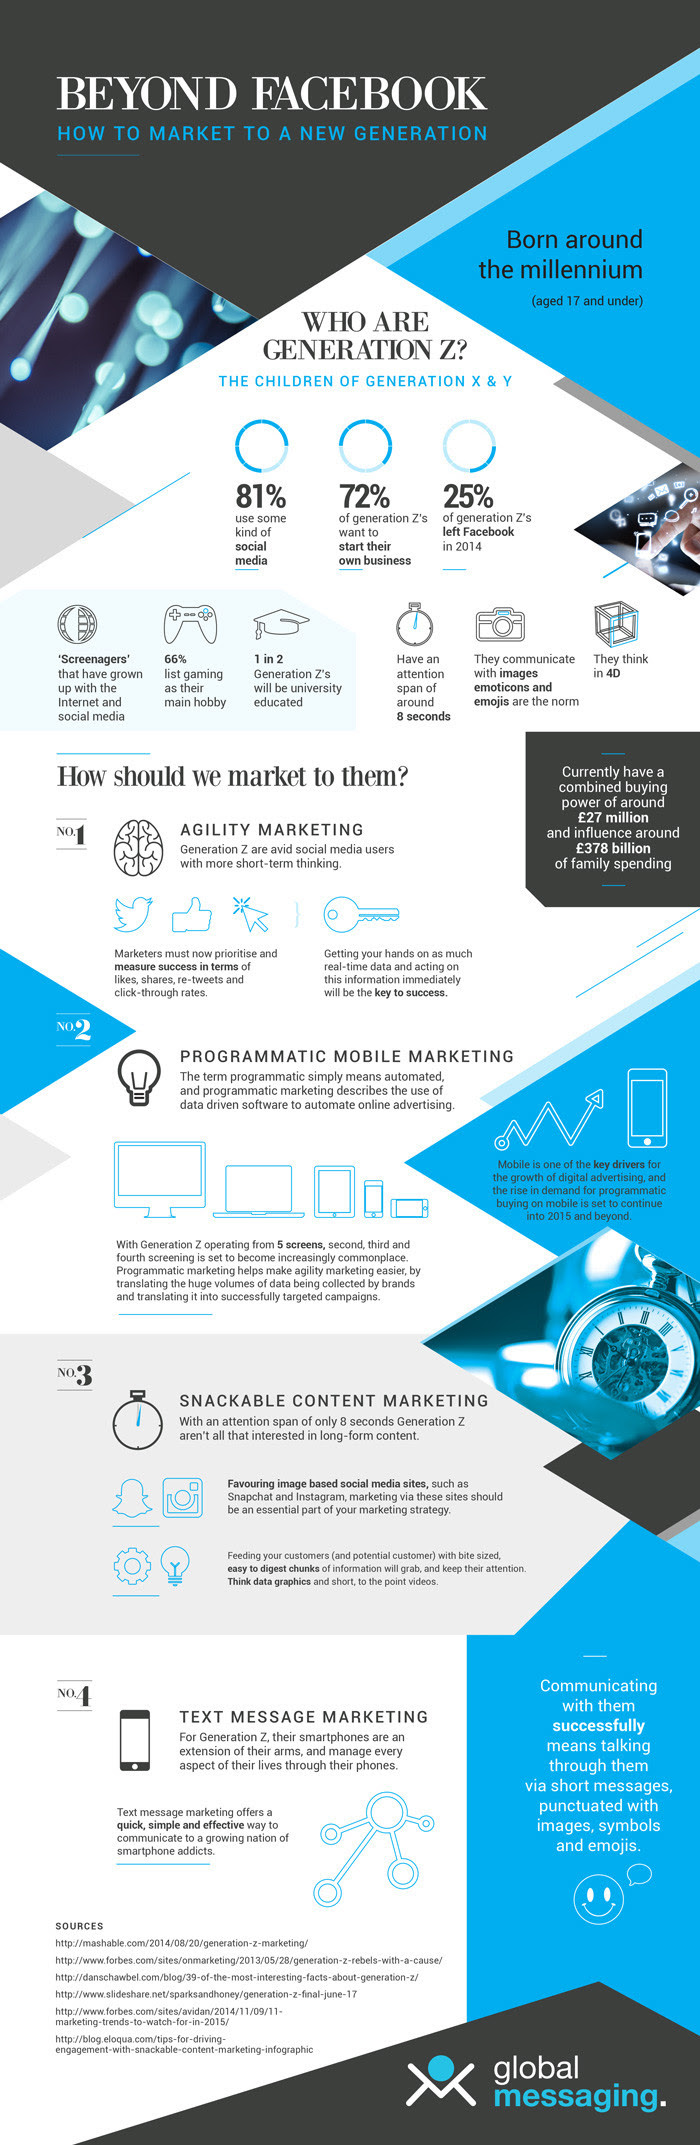 Beyond Facebook - Marketing To A New Generation - #infographic